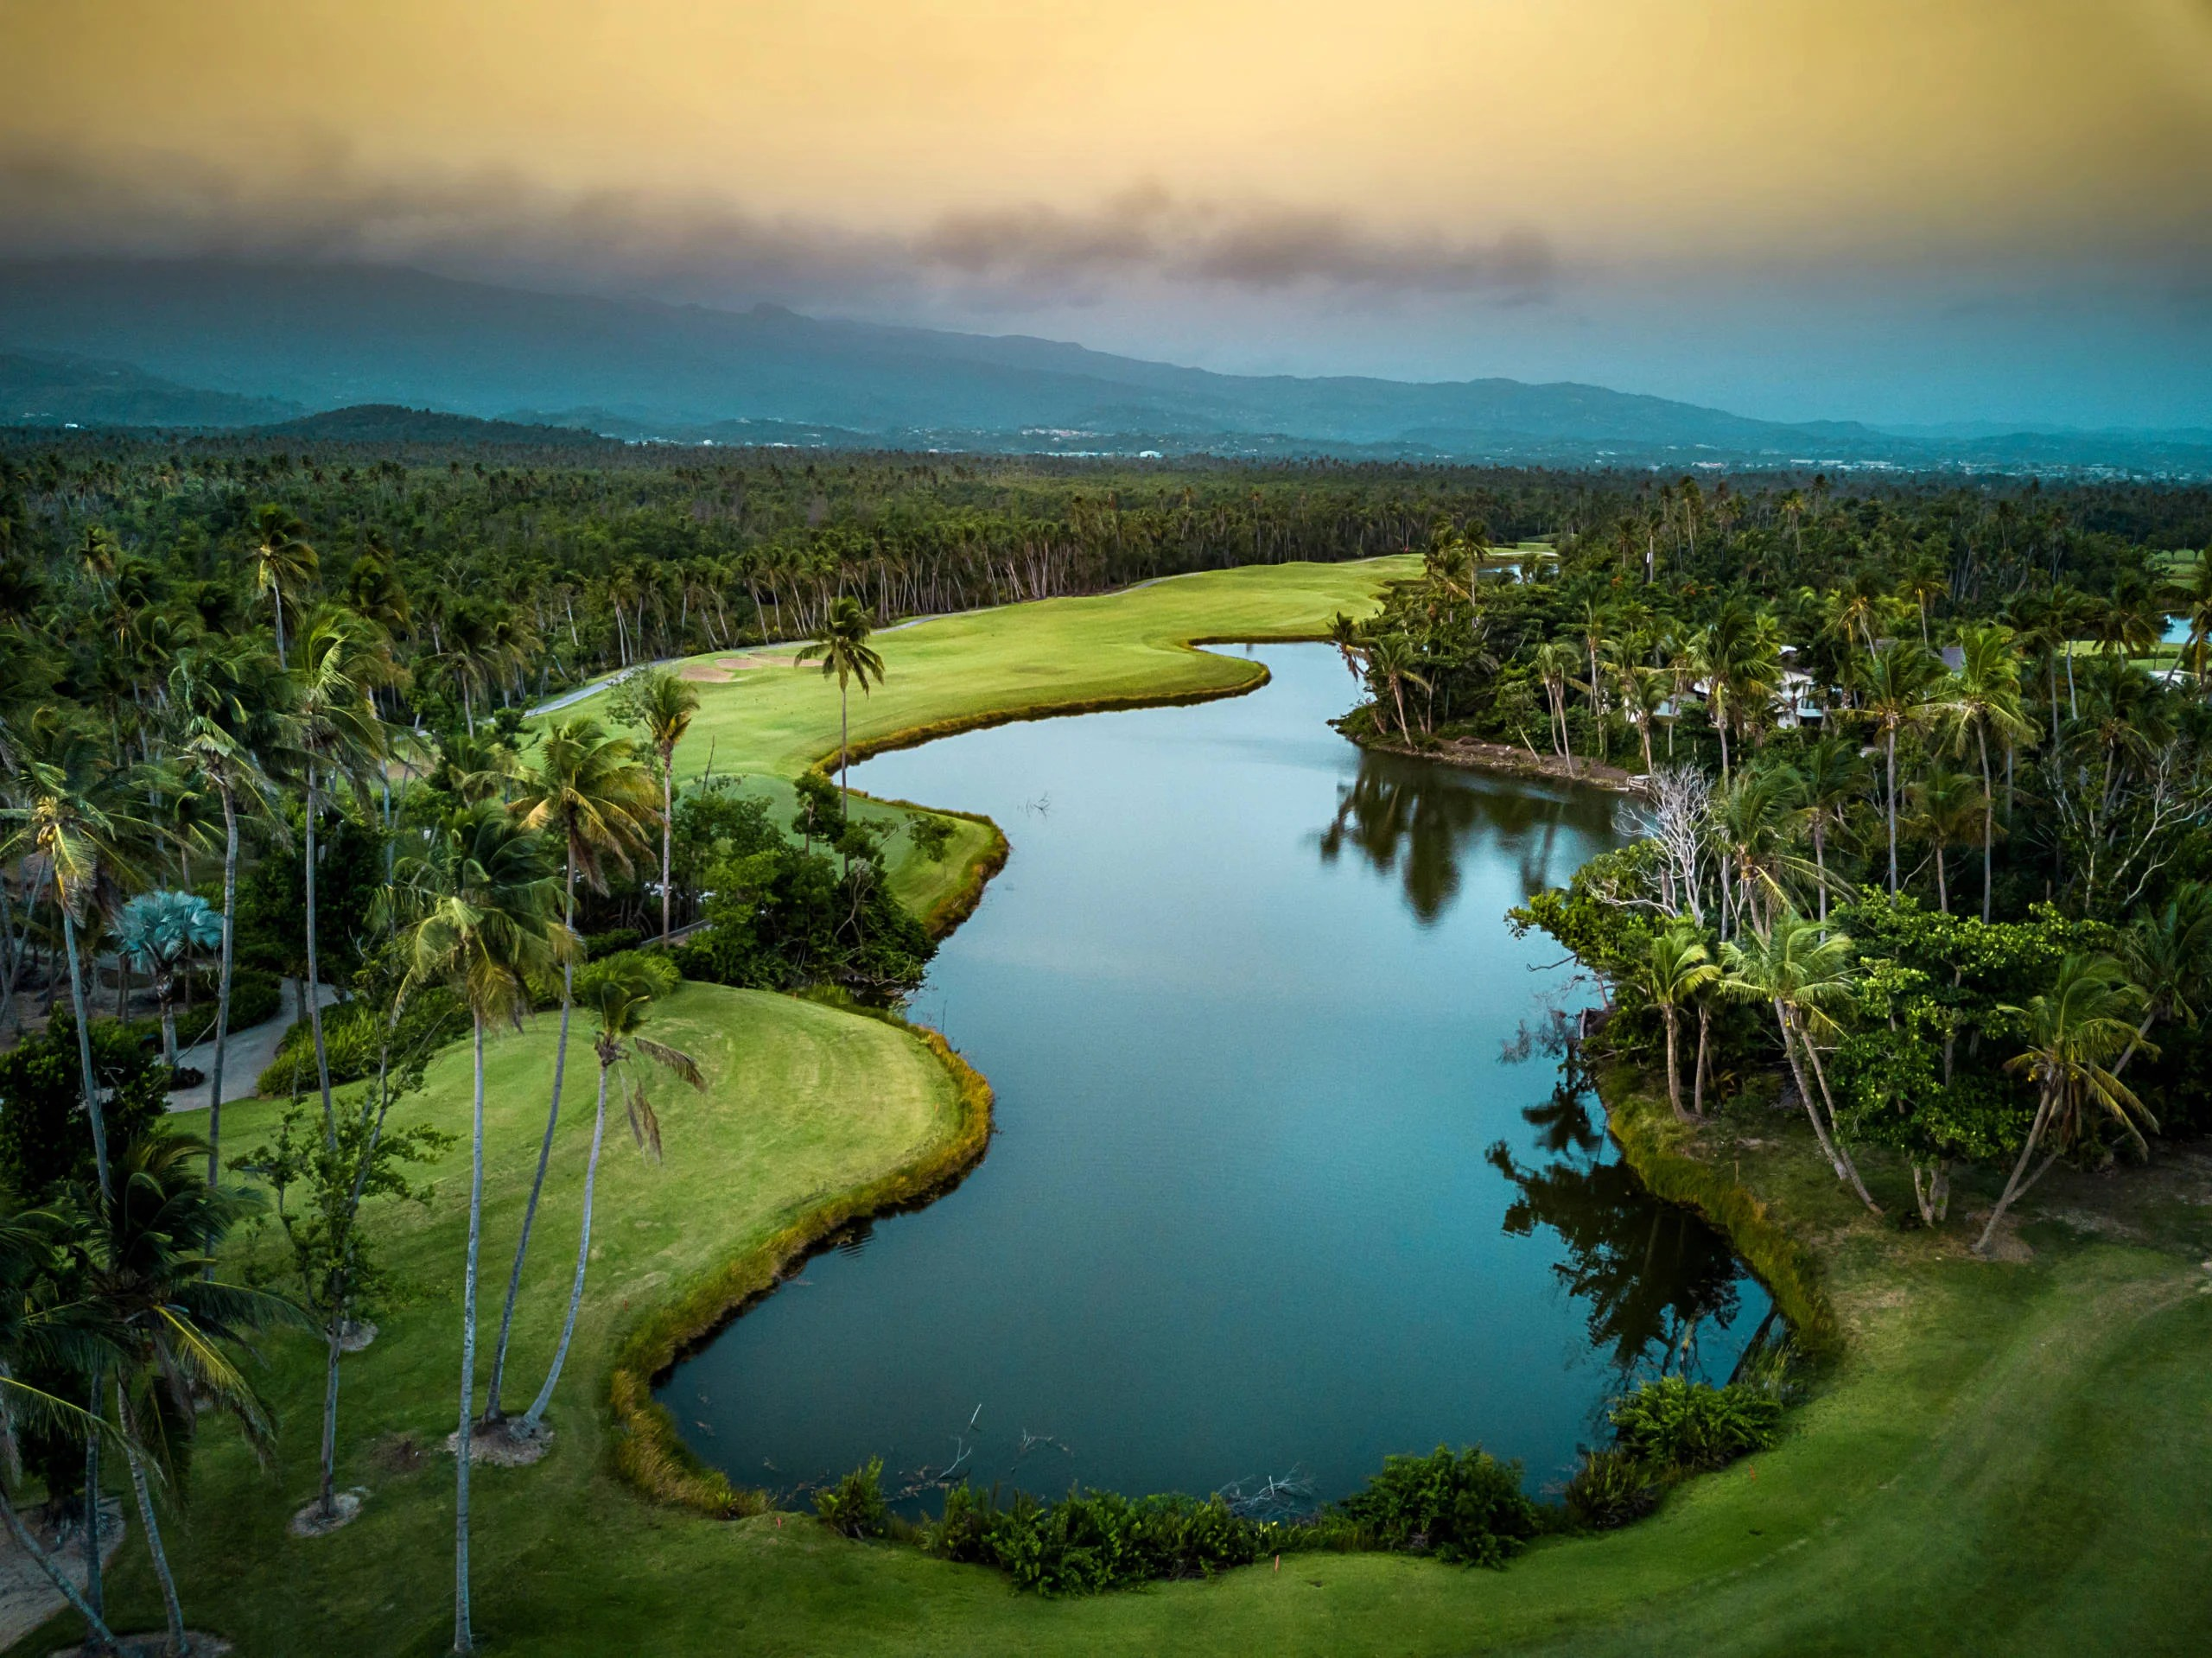 The golf course at St. Regis Bahia Beach (Photo courtesy of the resort)